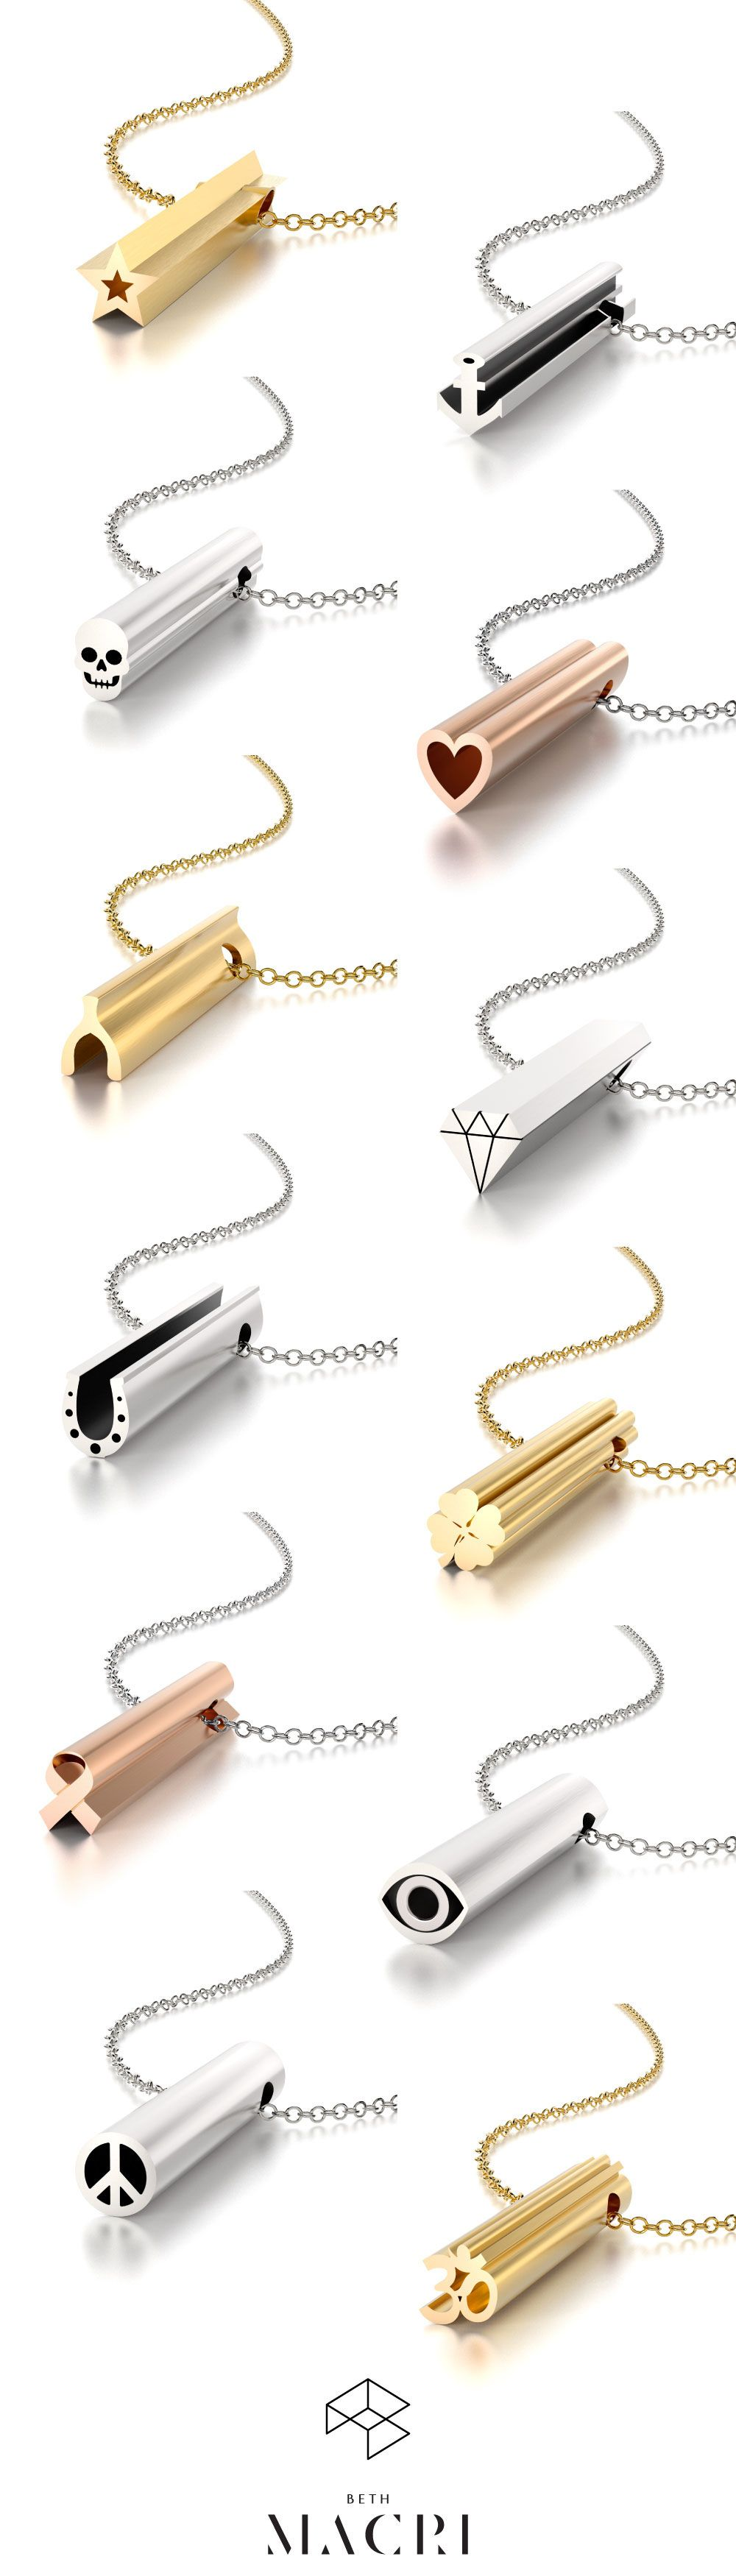 New Fashion Accessories Nickel Plated One Box 2018 DIY Needle Pins Practical